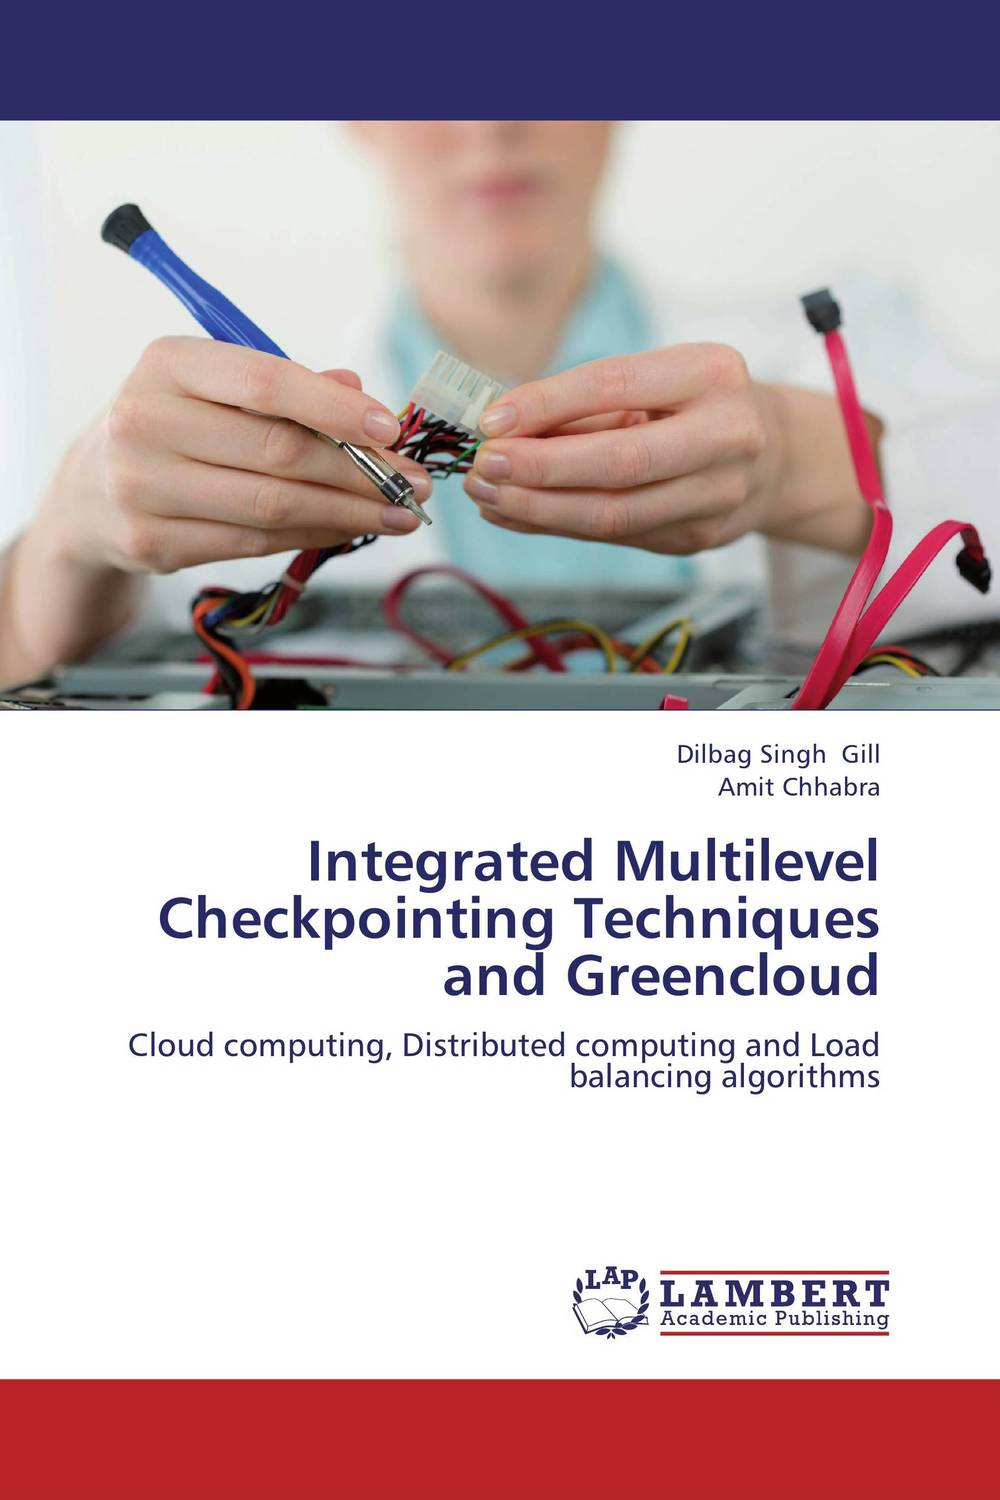 Integrated Multilevel Checkpointing Techniques and Greencloud dilbag singh gill evaluating overheads of integrated multilevel checkpointing algorithms